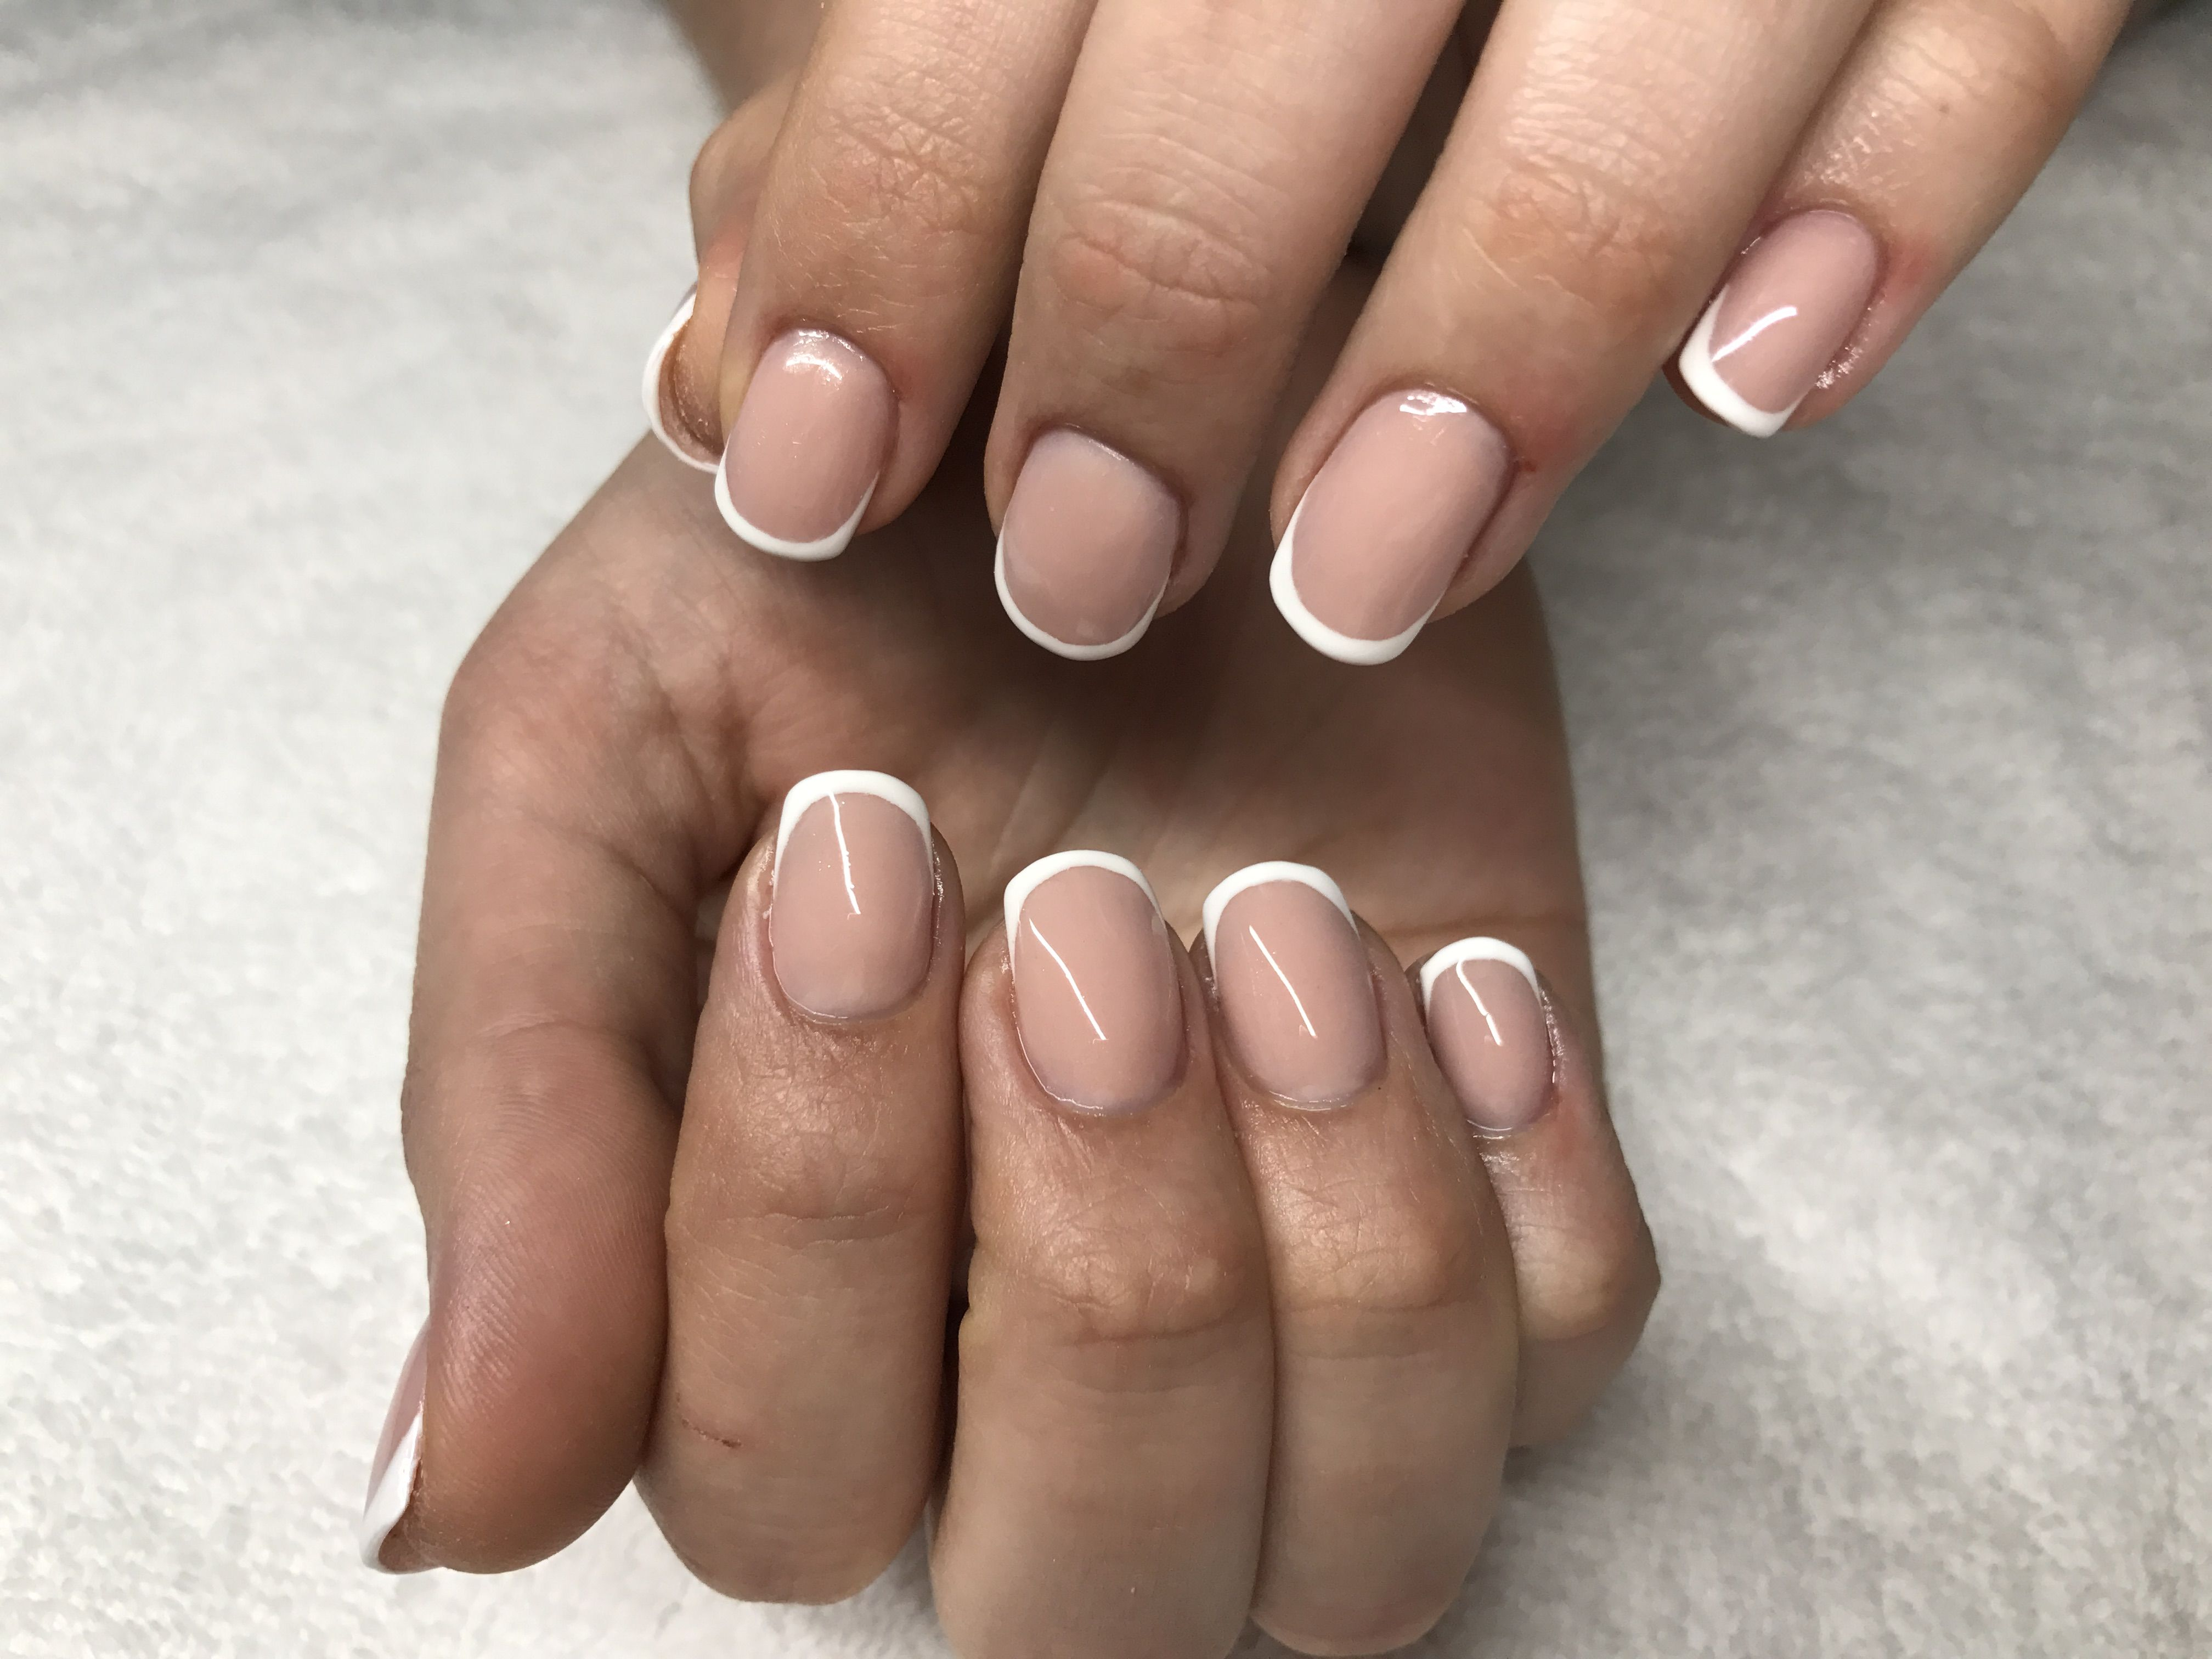 Acrylic Infill And Rebalance With Clic White French Tip On Bitten Nails